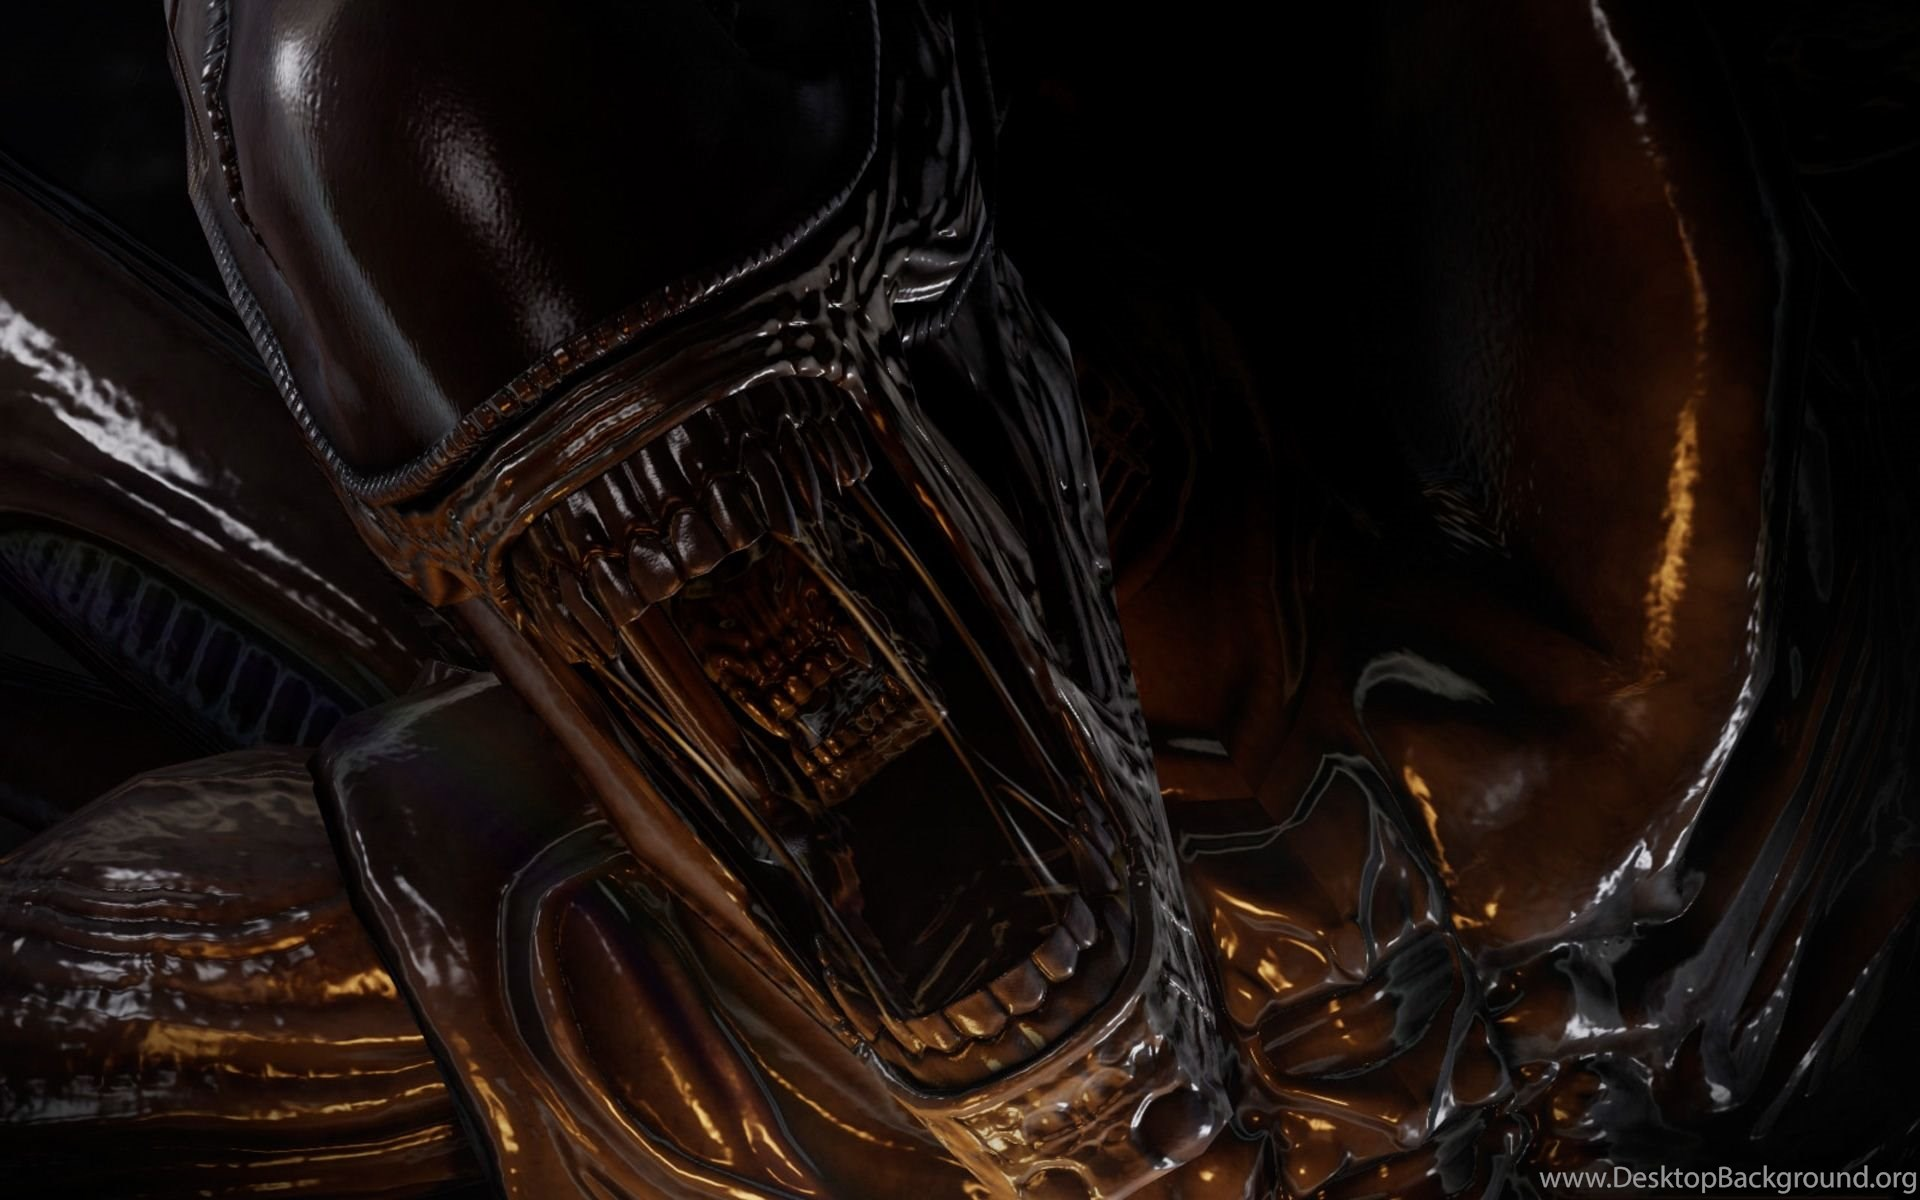 Alien Vs Predator Queen 1920x1200 Hd Wallpapers And Free Stock